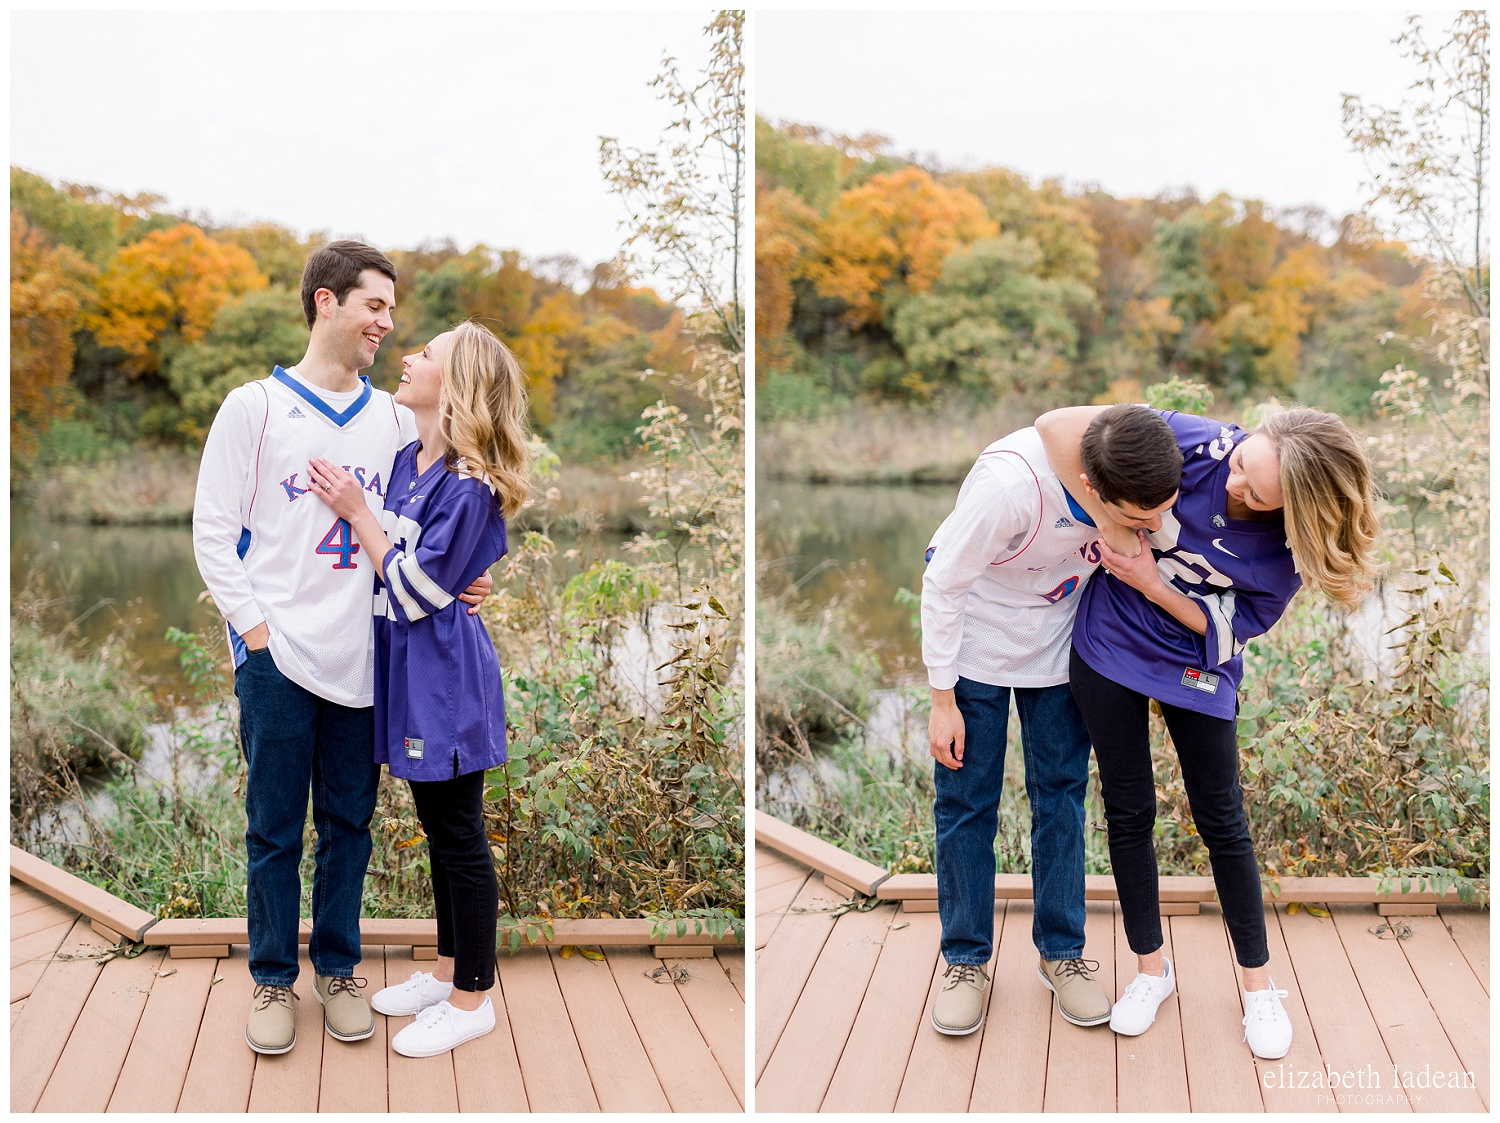 Colorful-Fall-Engagement-Photos-in-KC-C+B-2018-elizabeth-ladean-photography-photo_1795.jpg